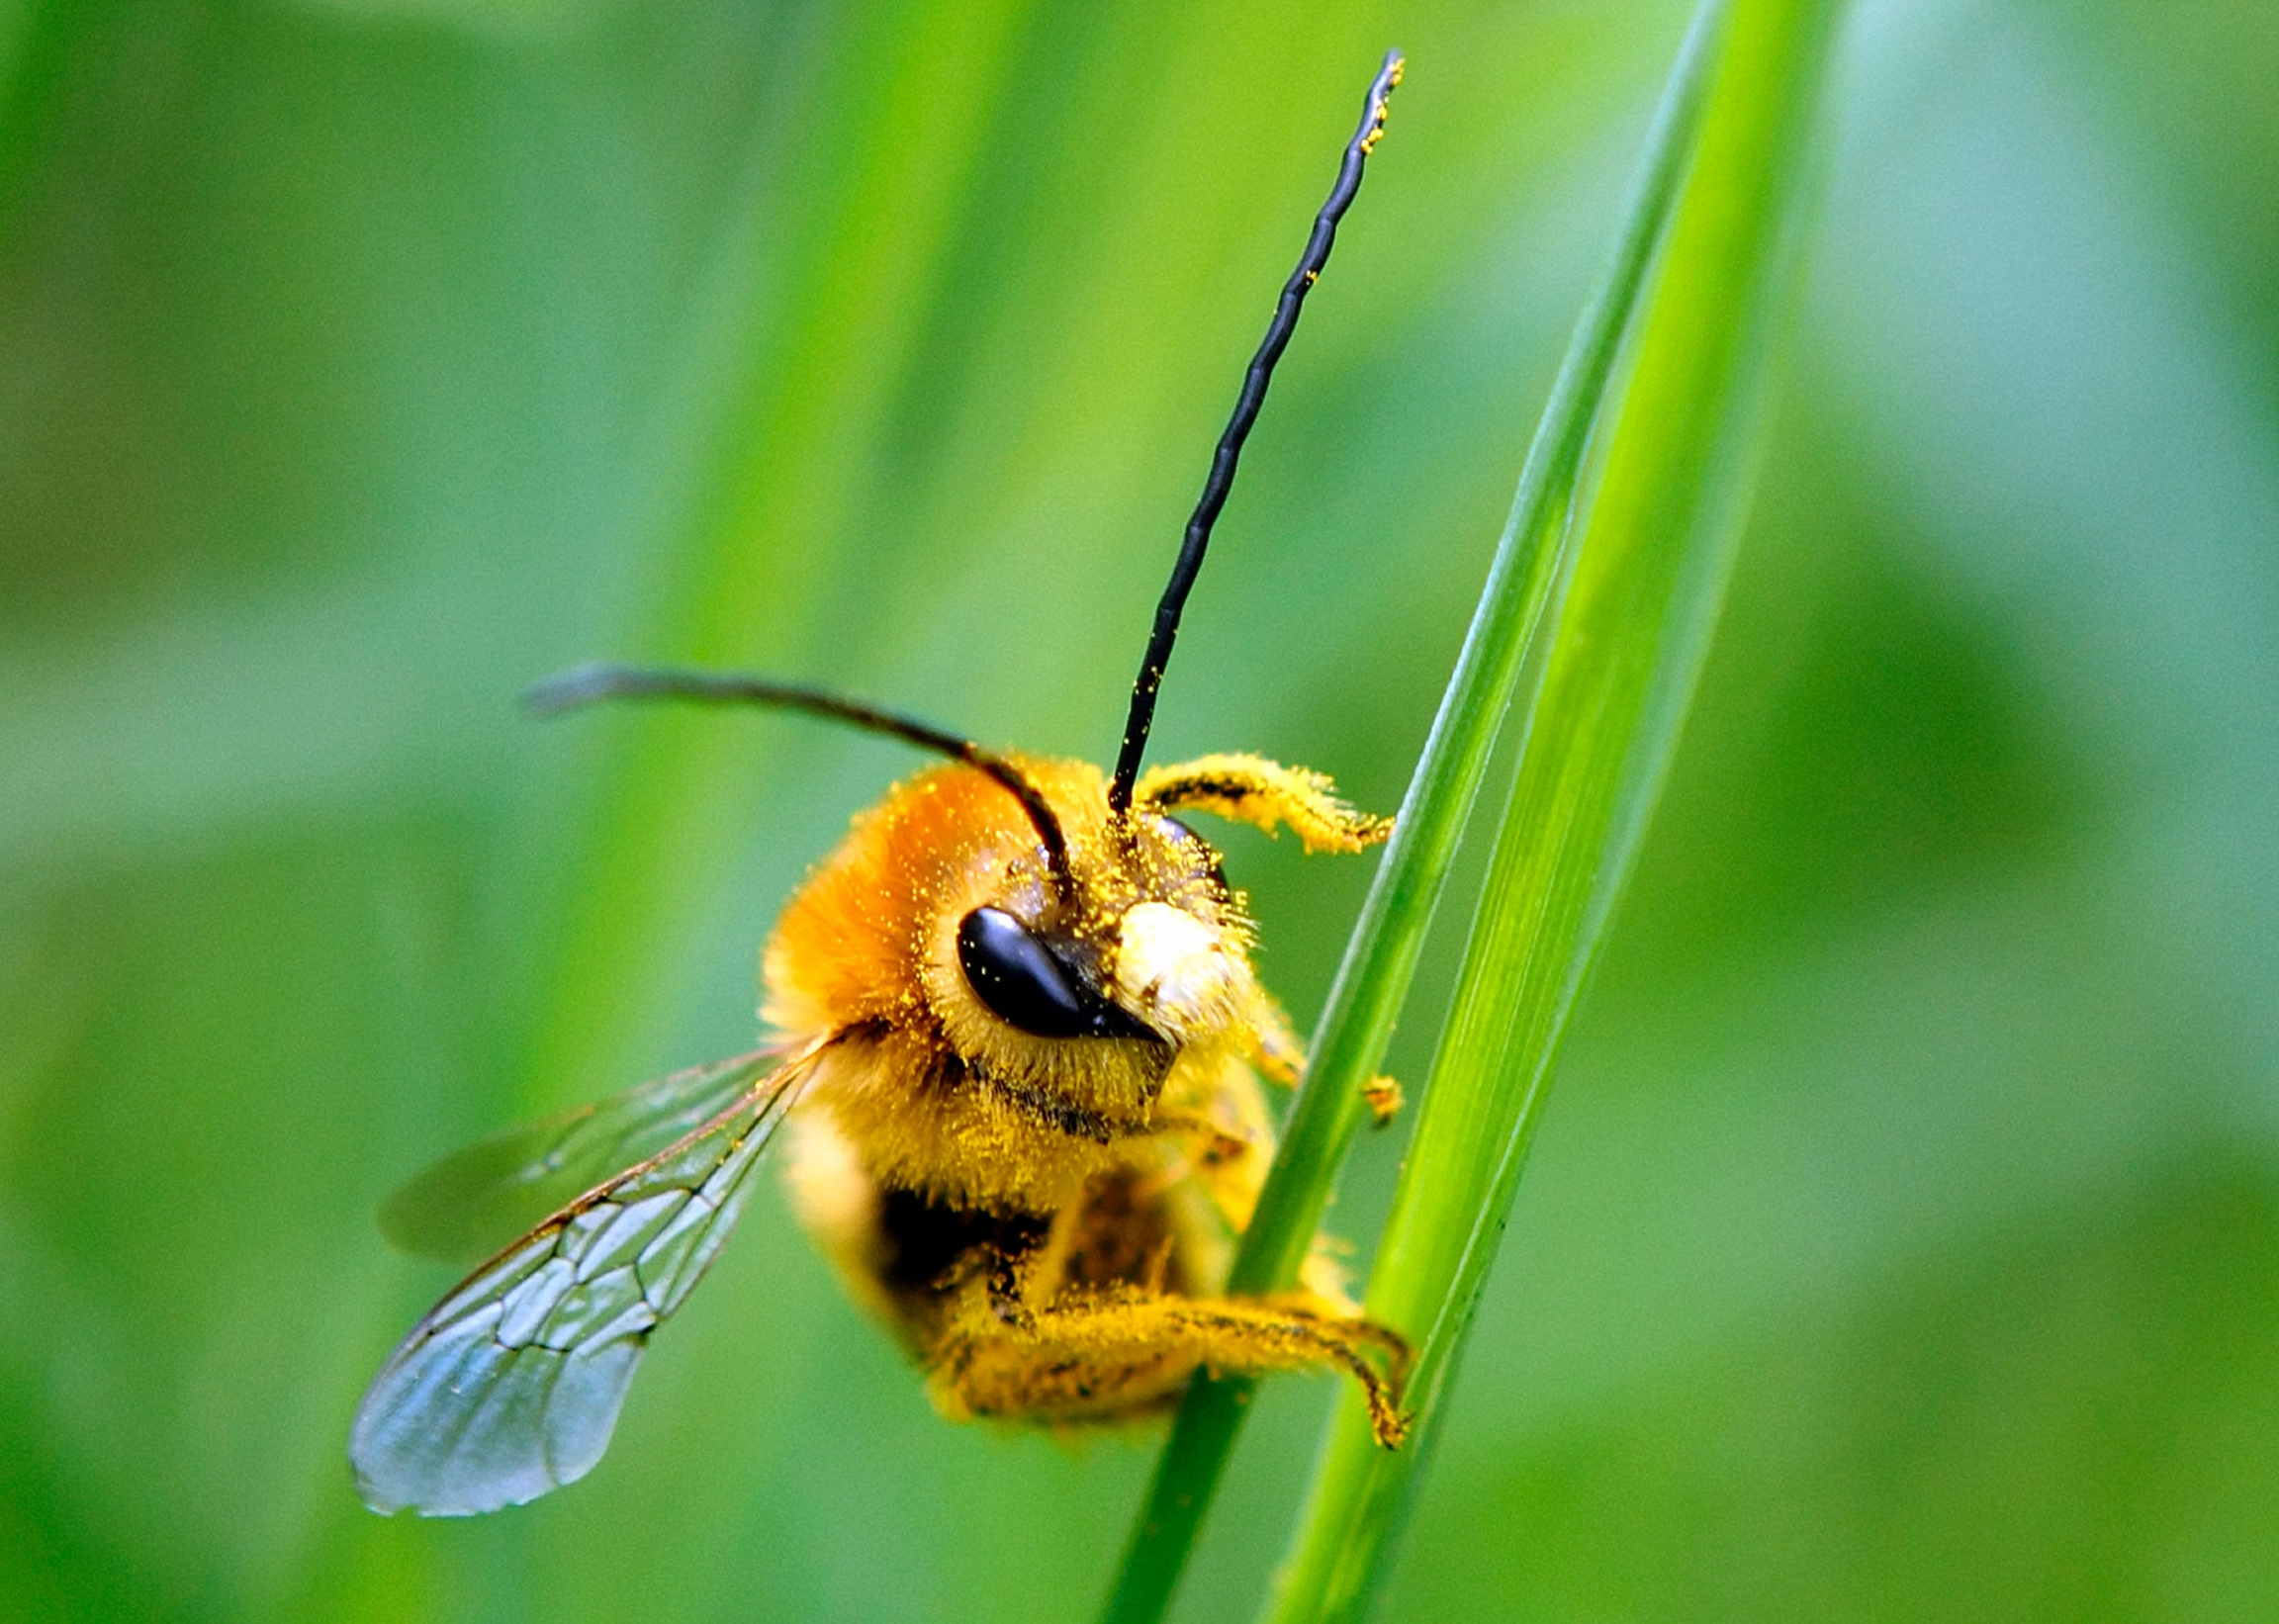 A bee is covered with pollen as it sits on a blade of grass at a lawn in Klosterneubur, Austria.